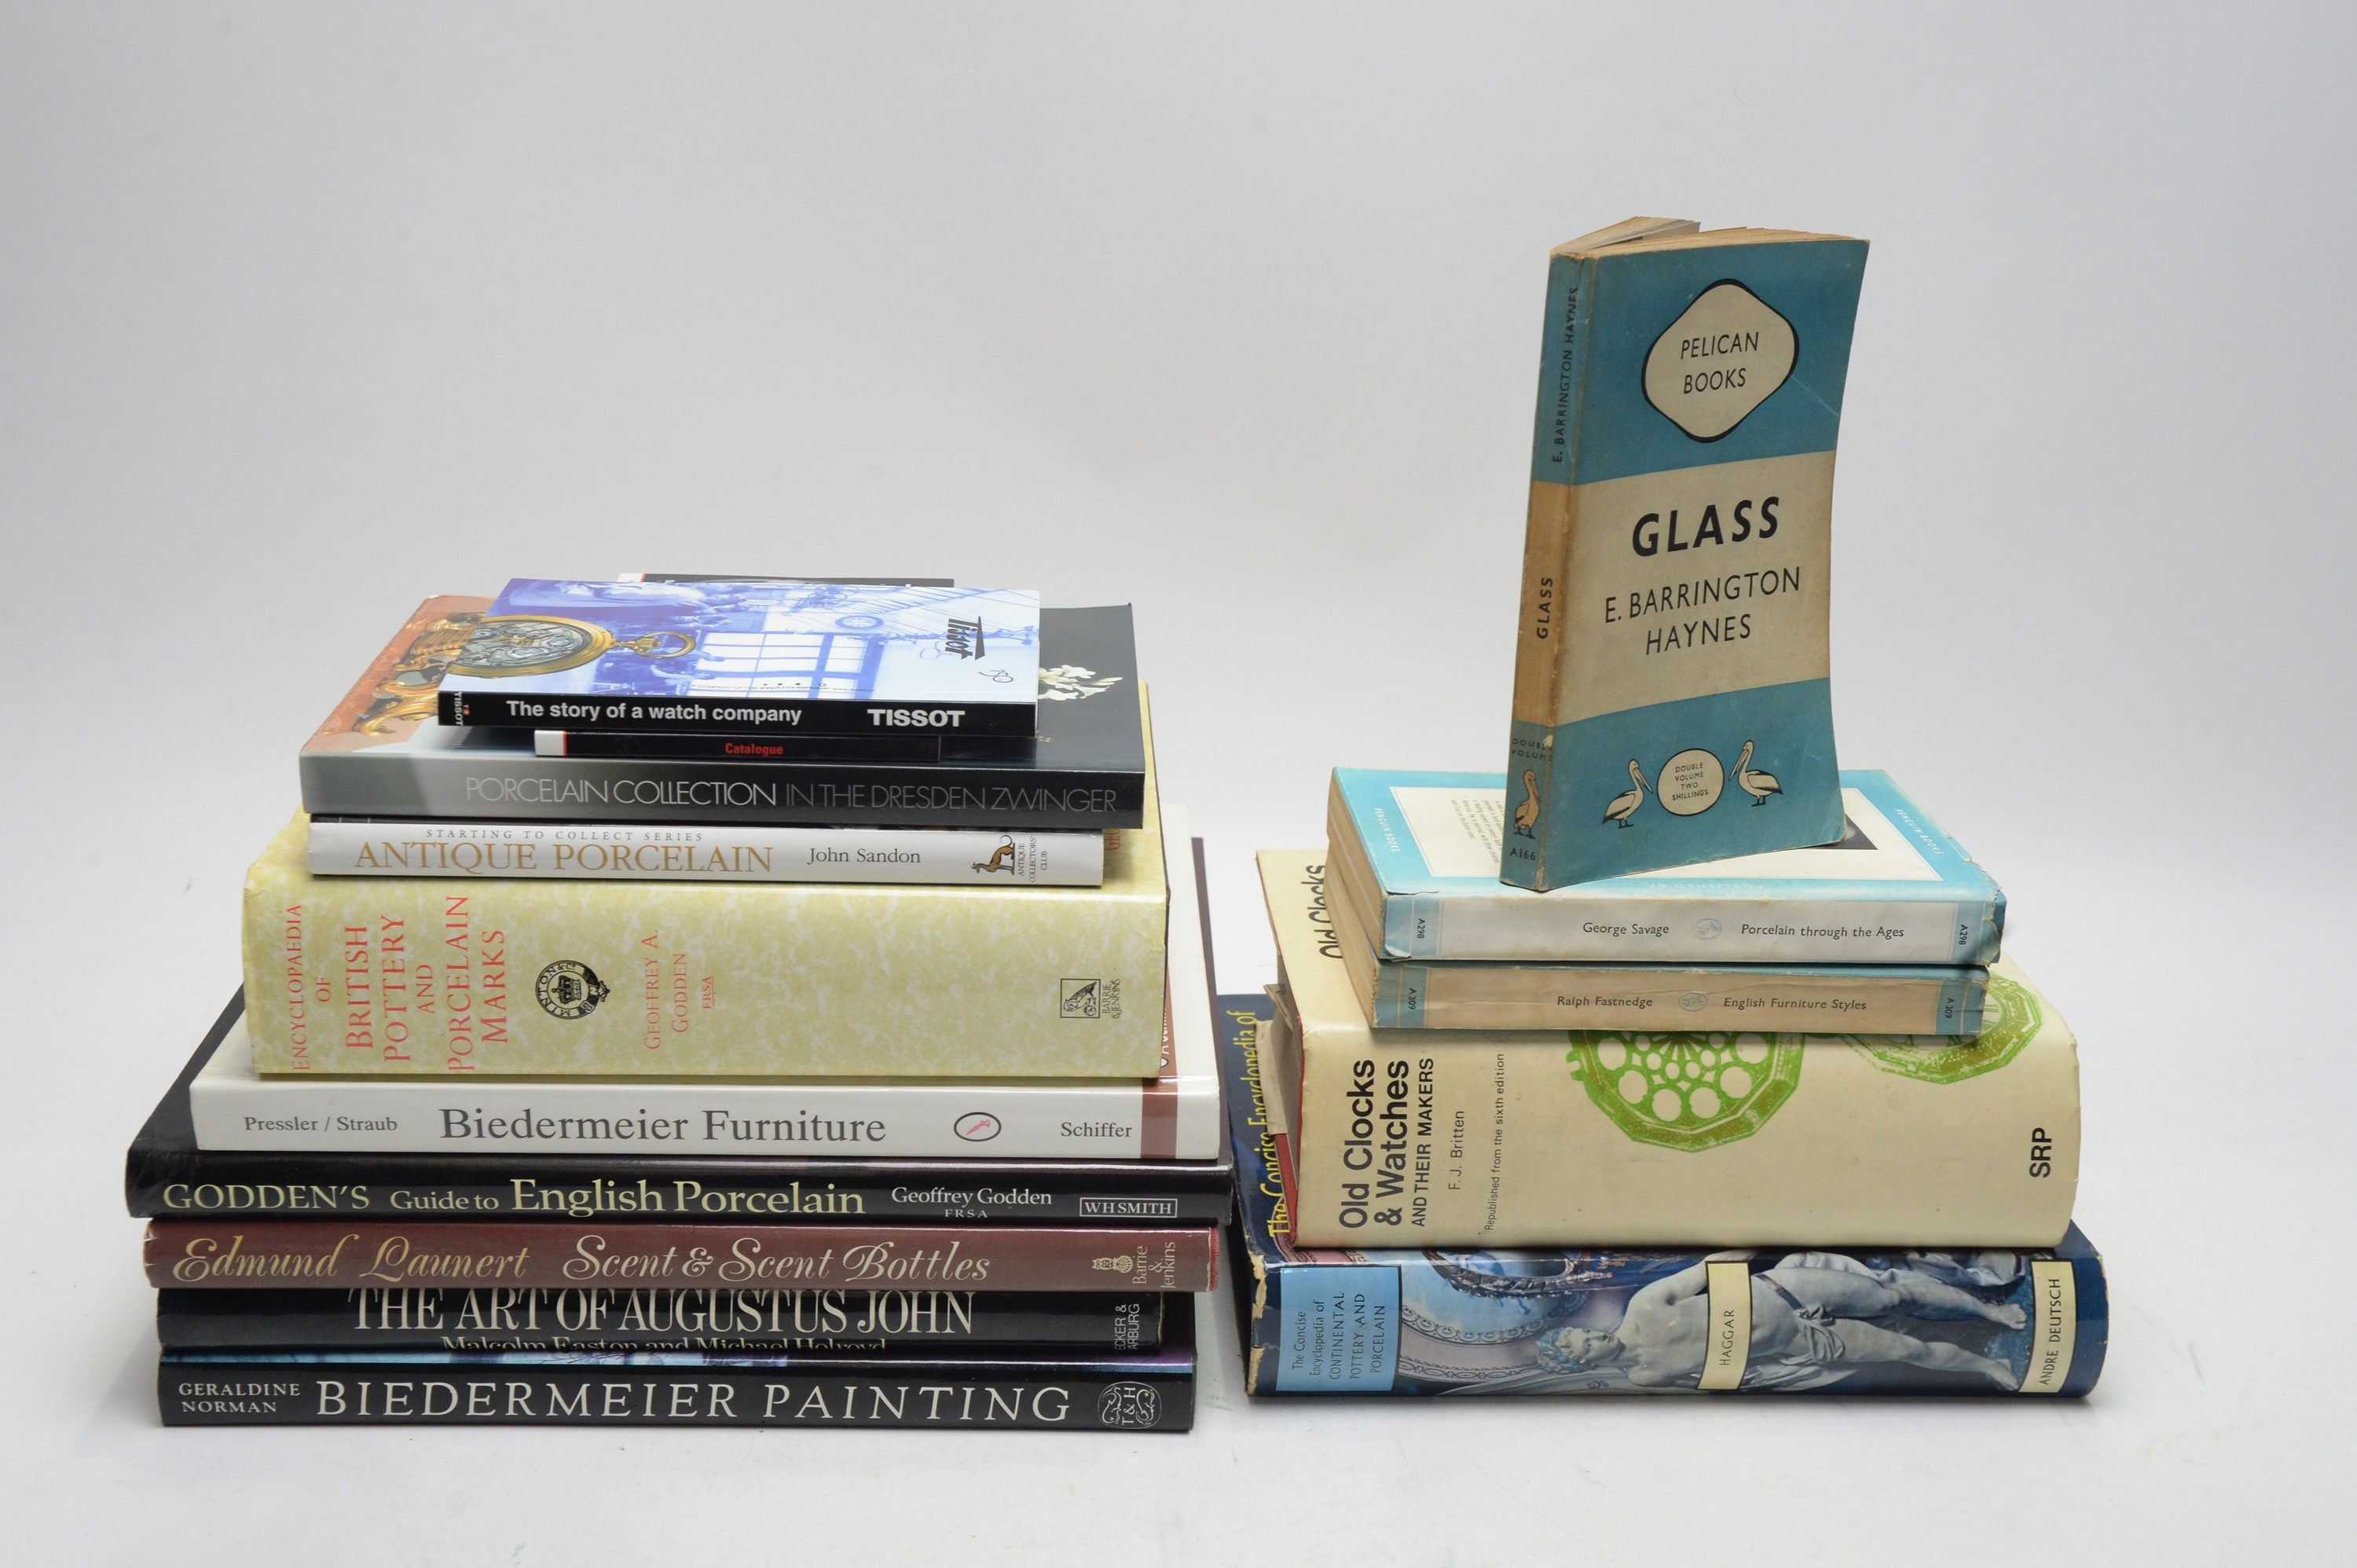 Easton (Malcolm) and Alroyd (Michael) and other Authors on Art, Antiques and Collectables. - Image 3 of 3